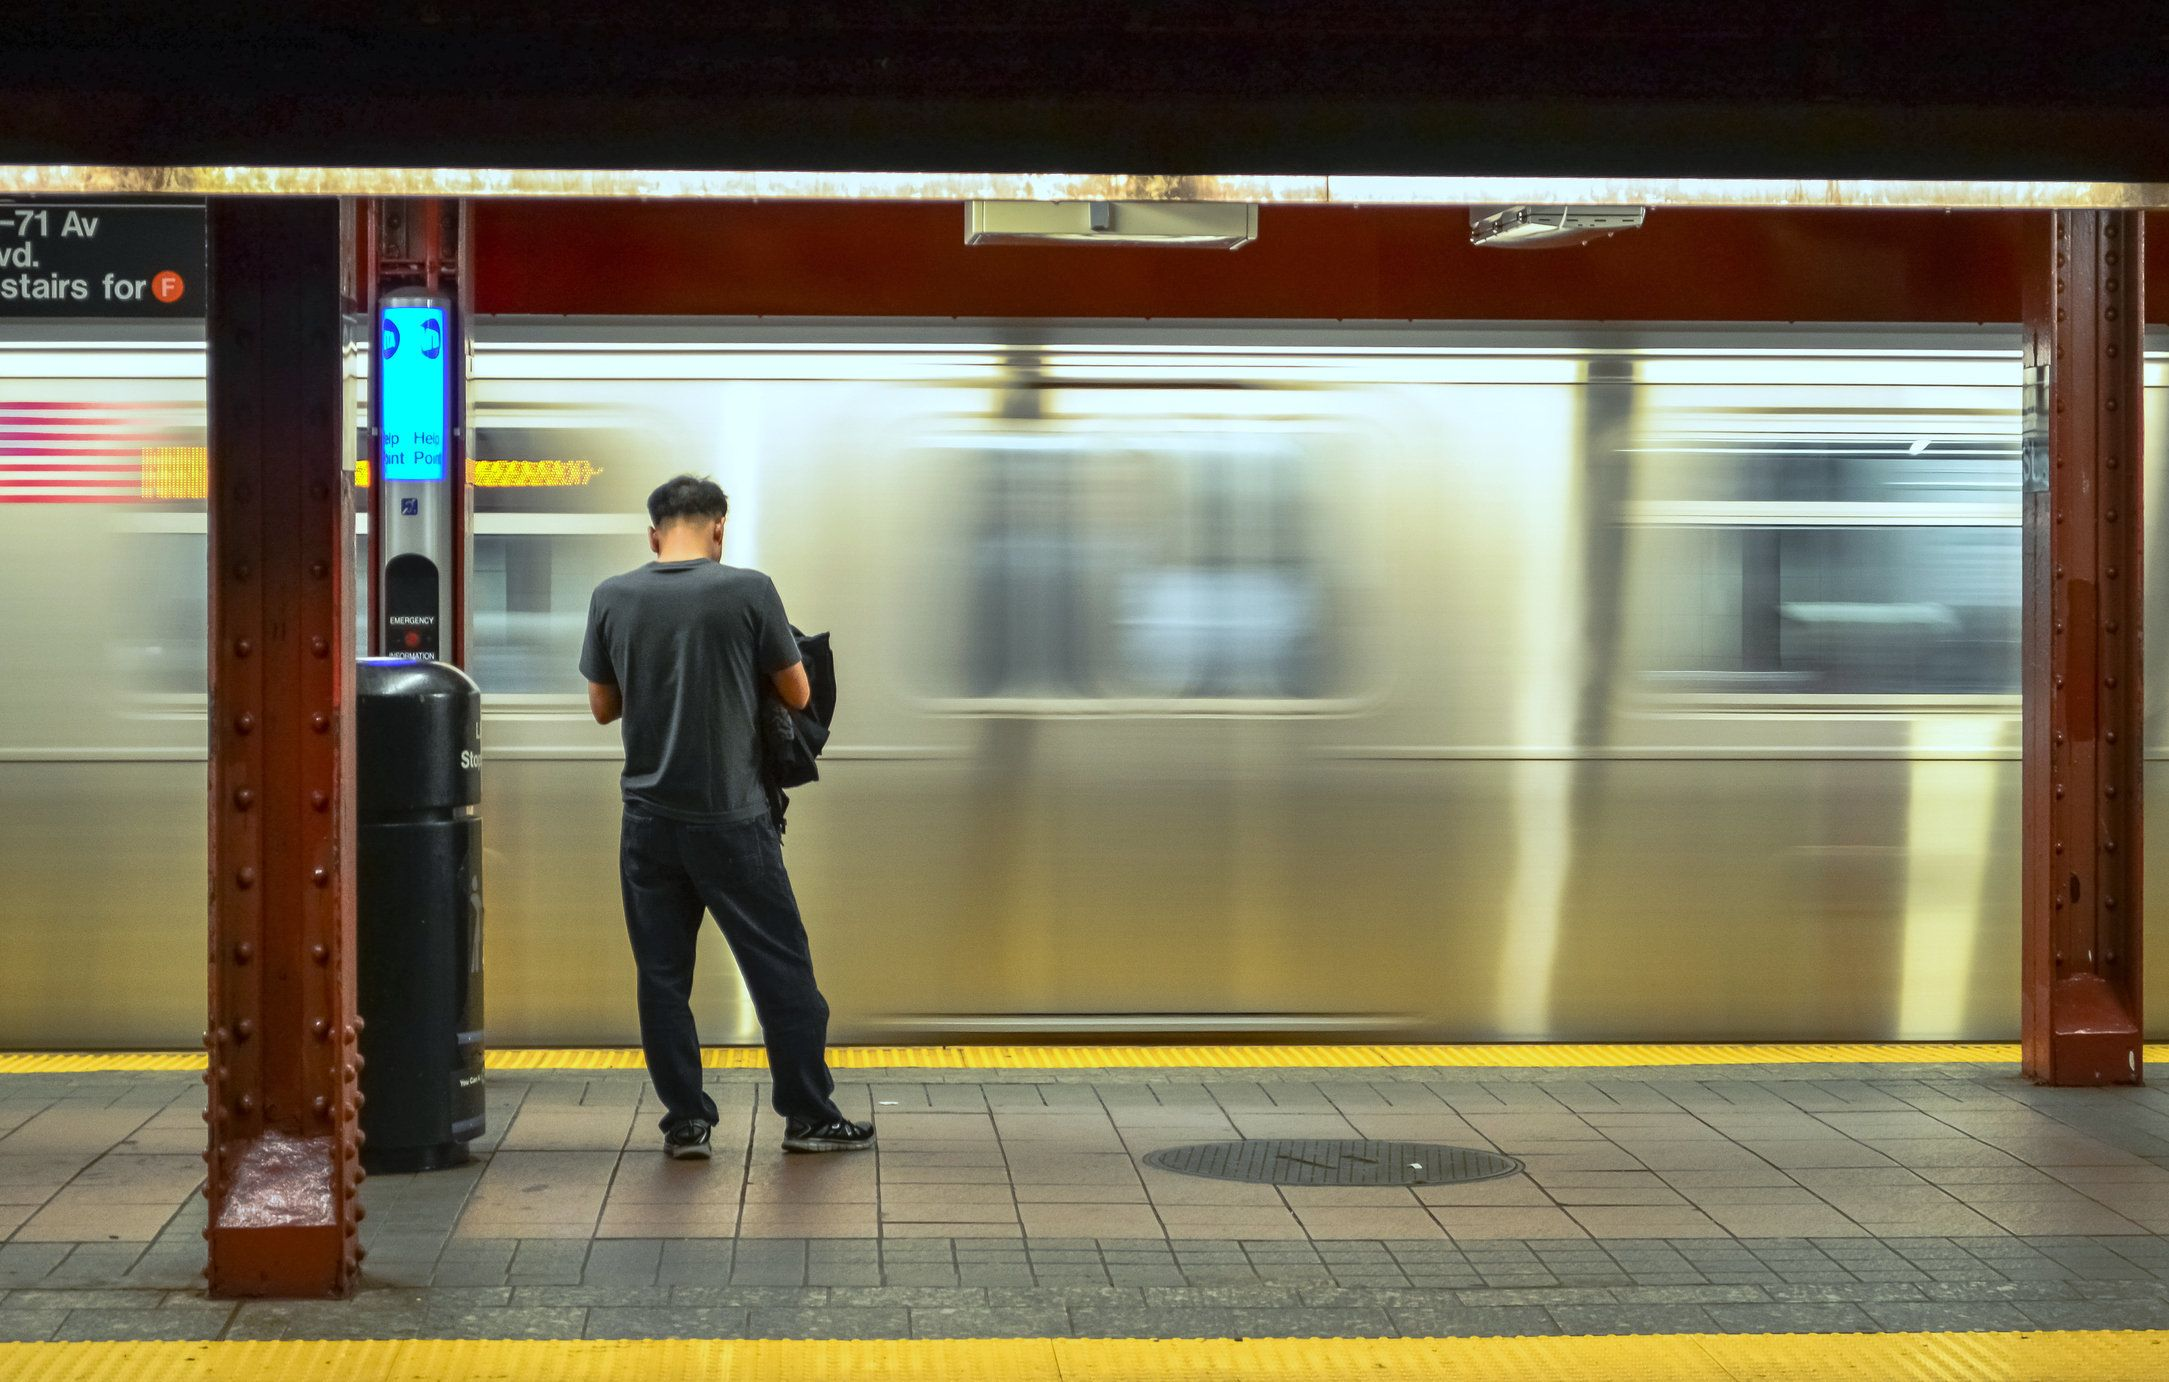 Unrecognizable person waiting as a subway train passes by at high speed creating blurred motion on background in New York City, USA